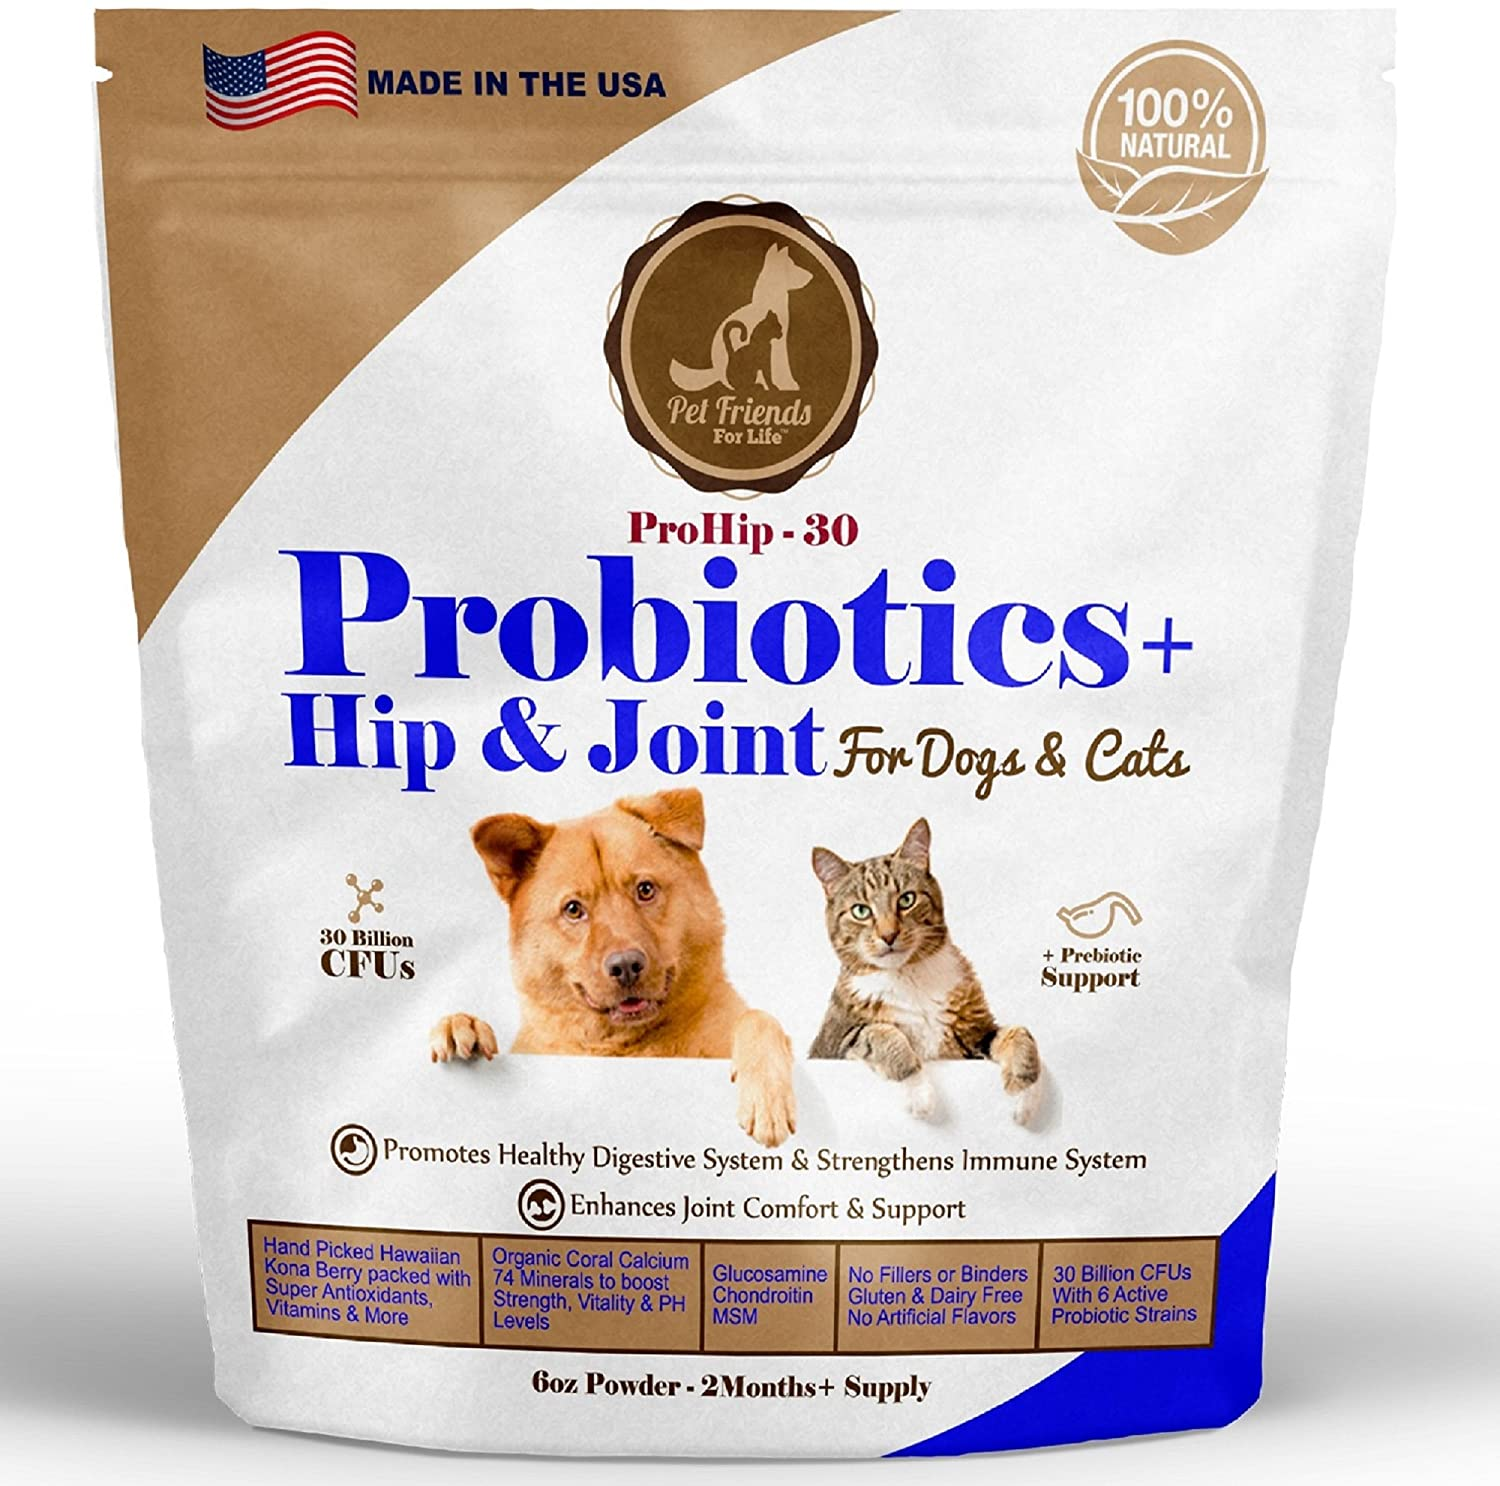 Grain Free Dog Food Constipation